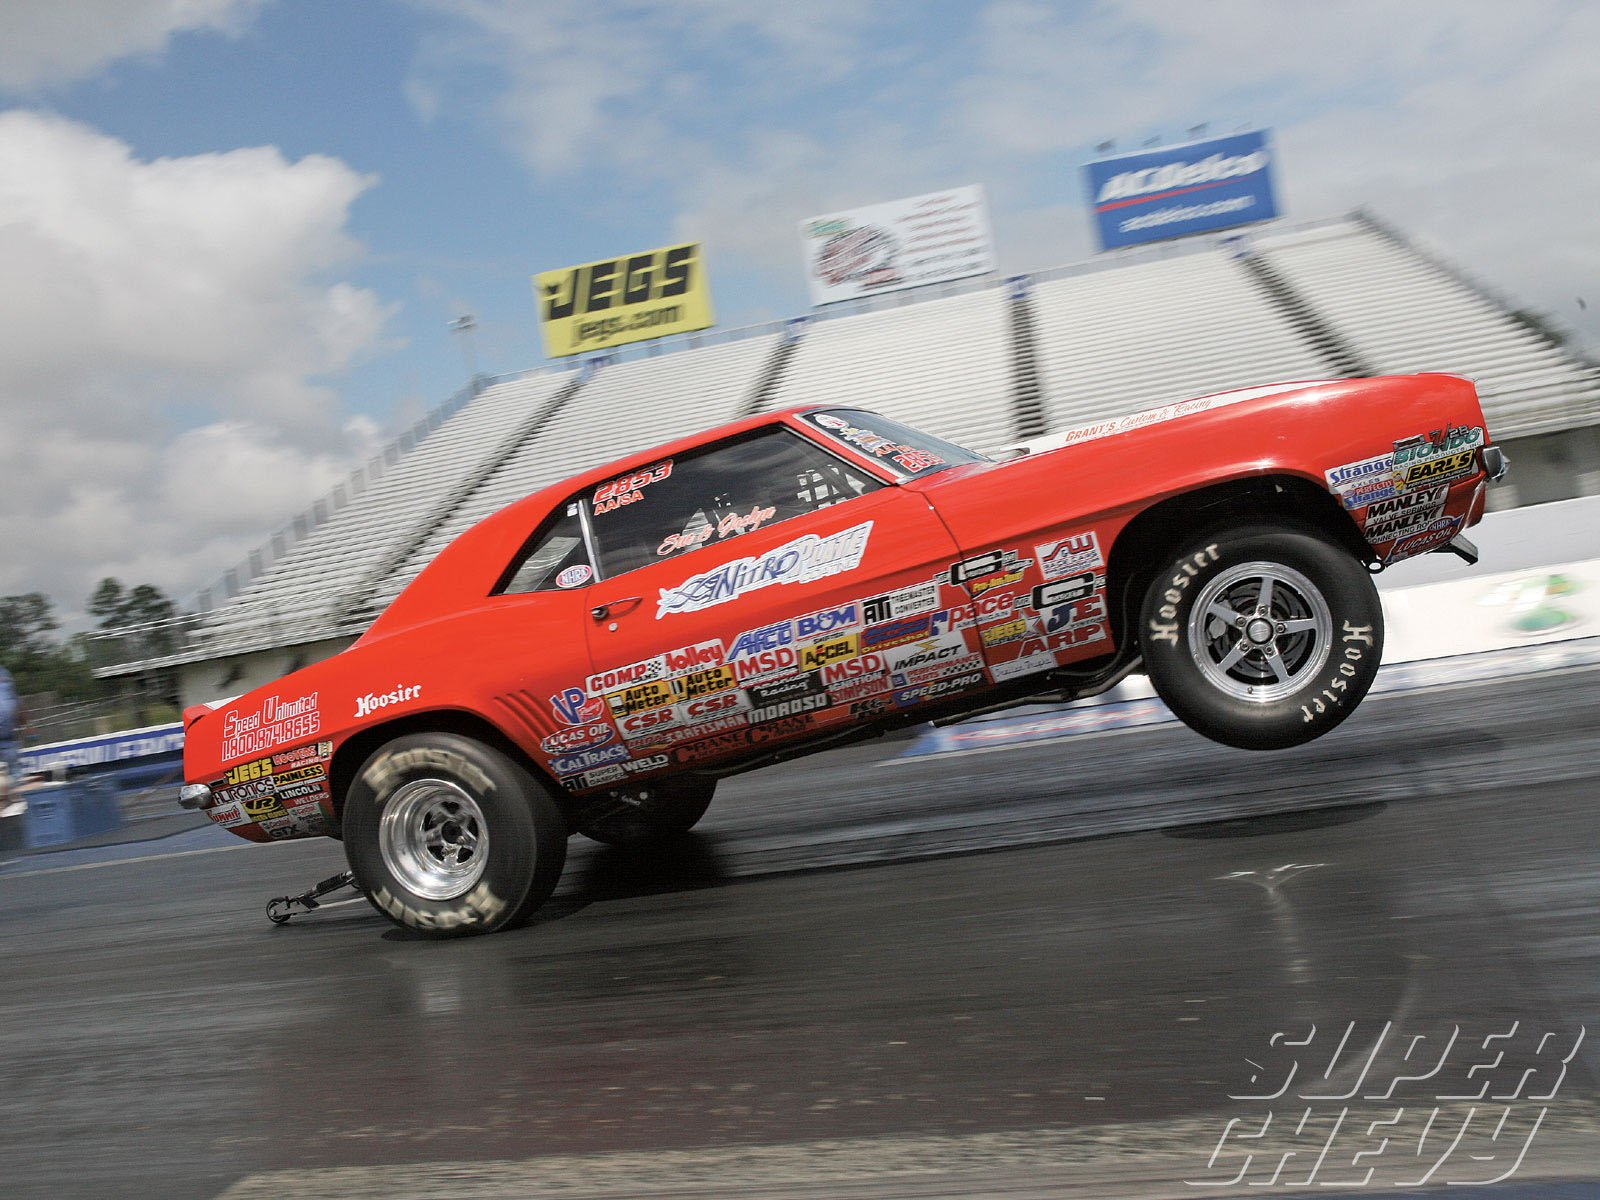 Drag racing wallpaper and background image 1600x1200 - Drag race wallpaper ...